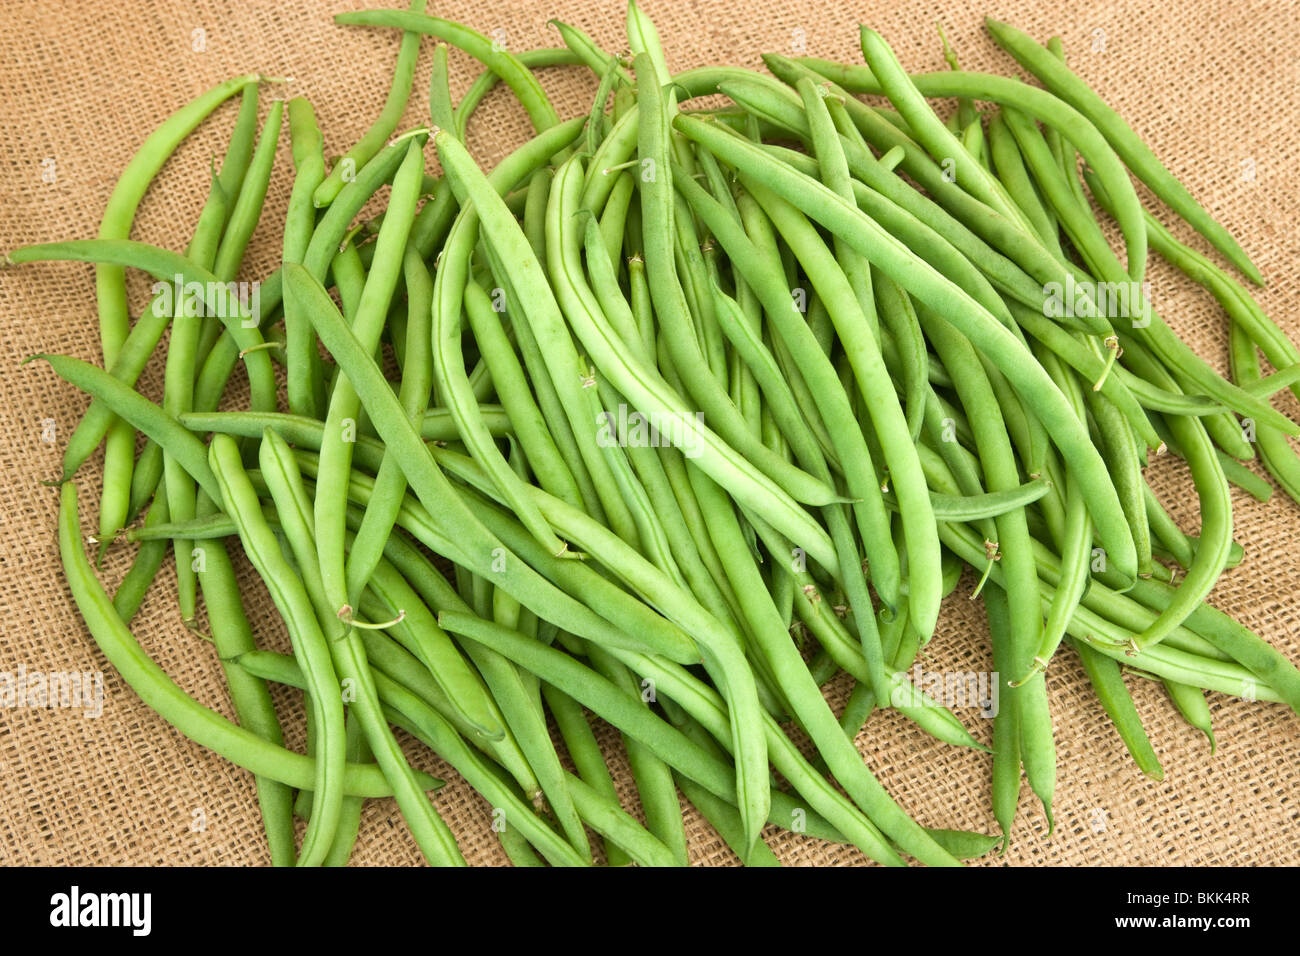 String Beans High Resolution Stock Photography and Images   Alamy